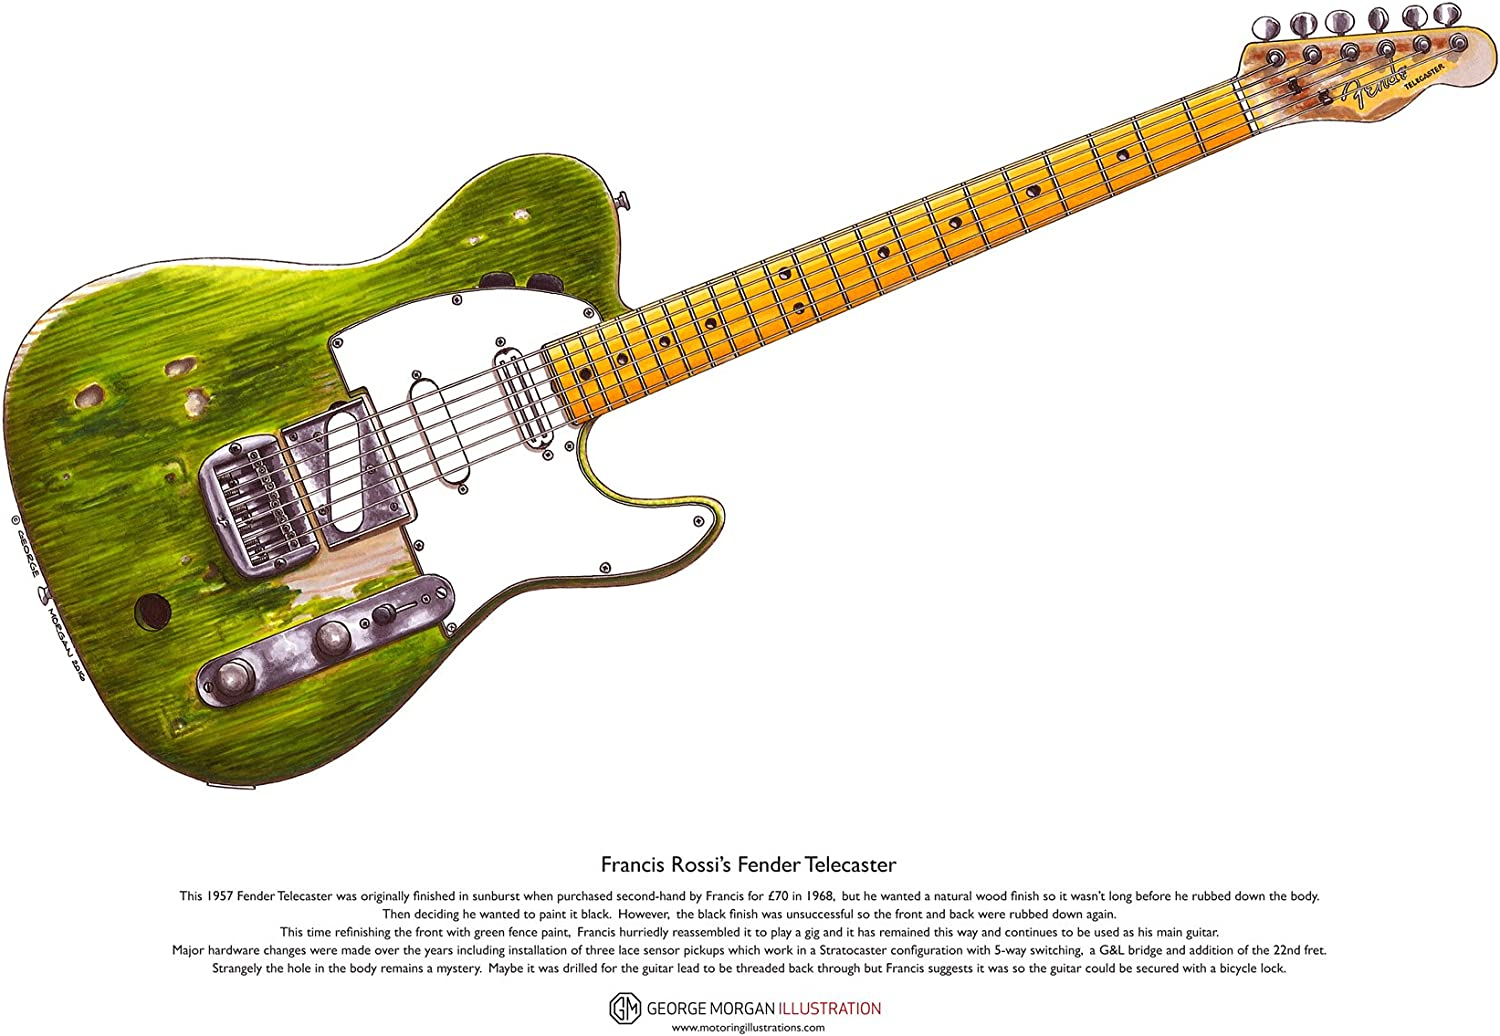 George Morgan Illustration Guitarra Fender Telecaster de Francis ...